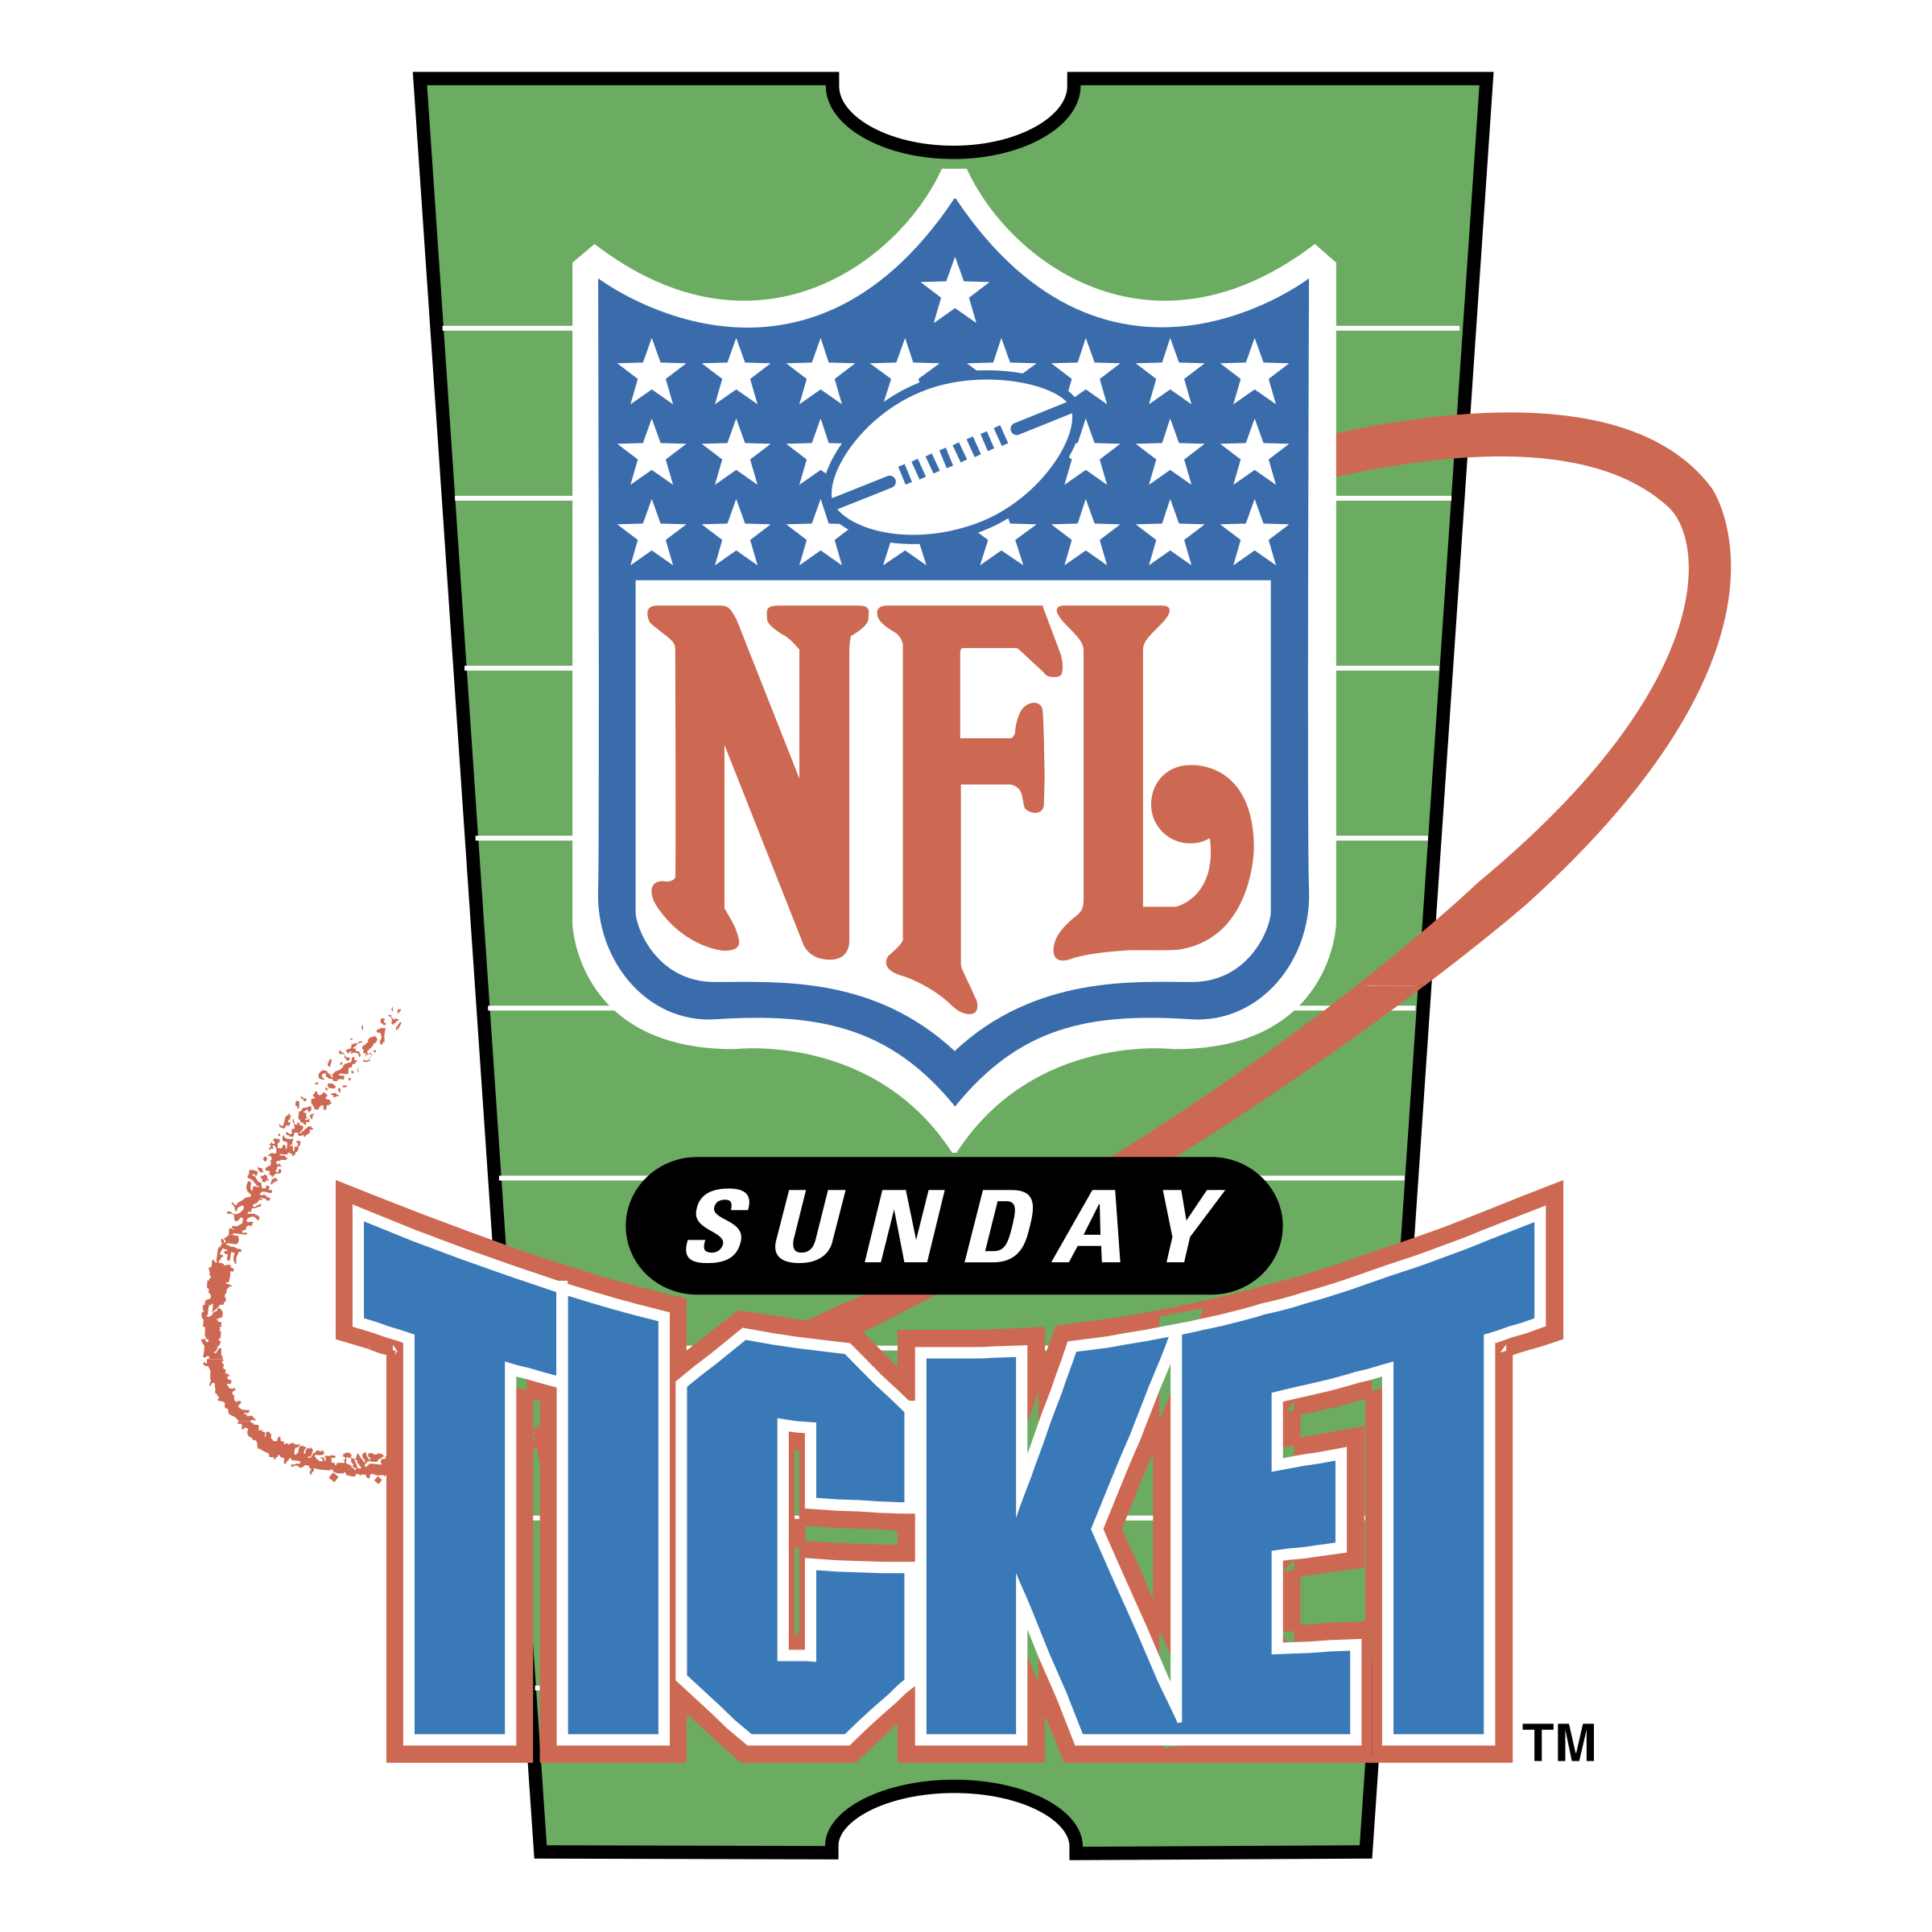 Nfl sunday ticket png. Logo transparent svg vector